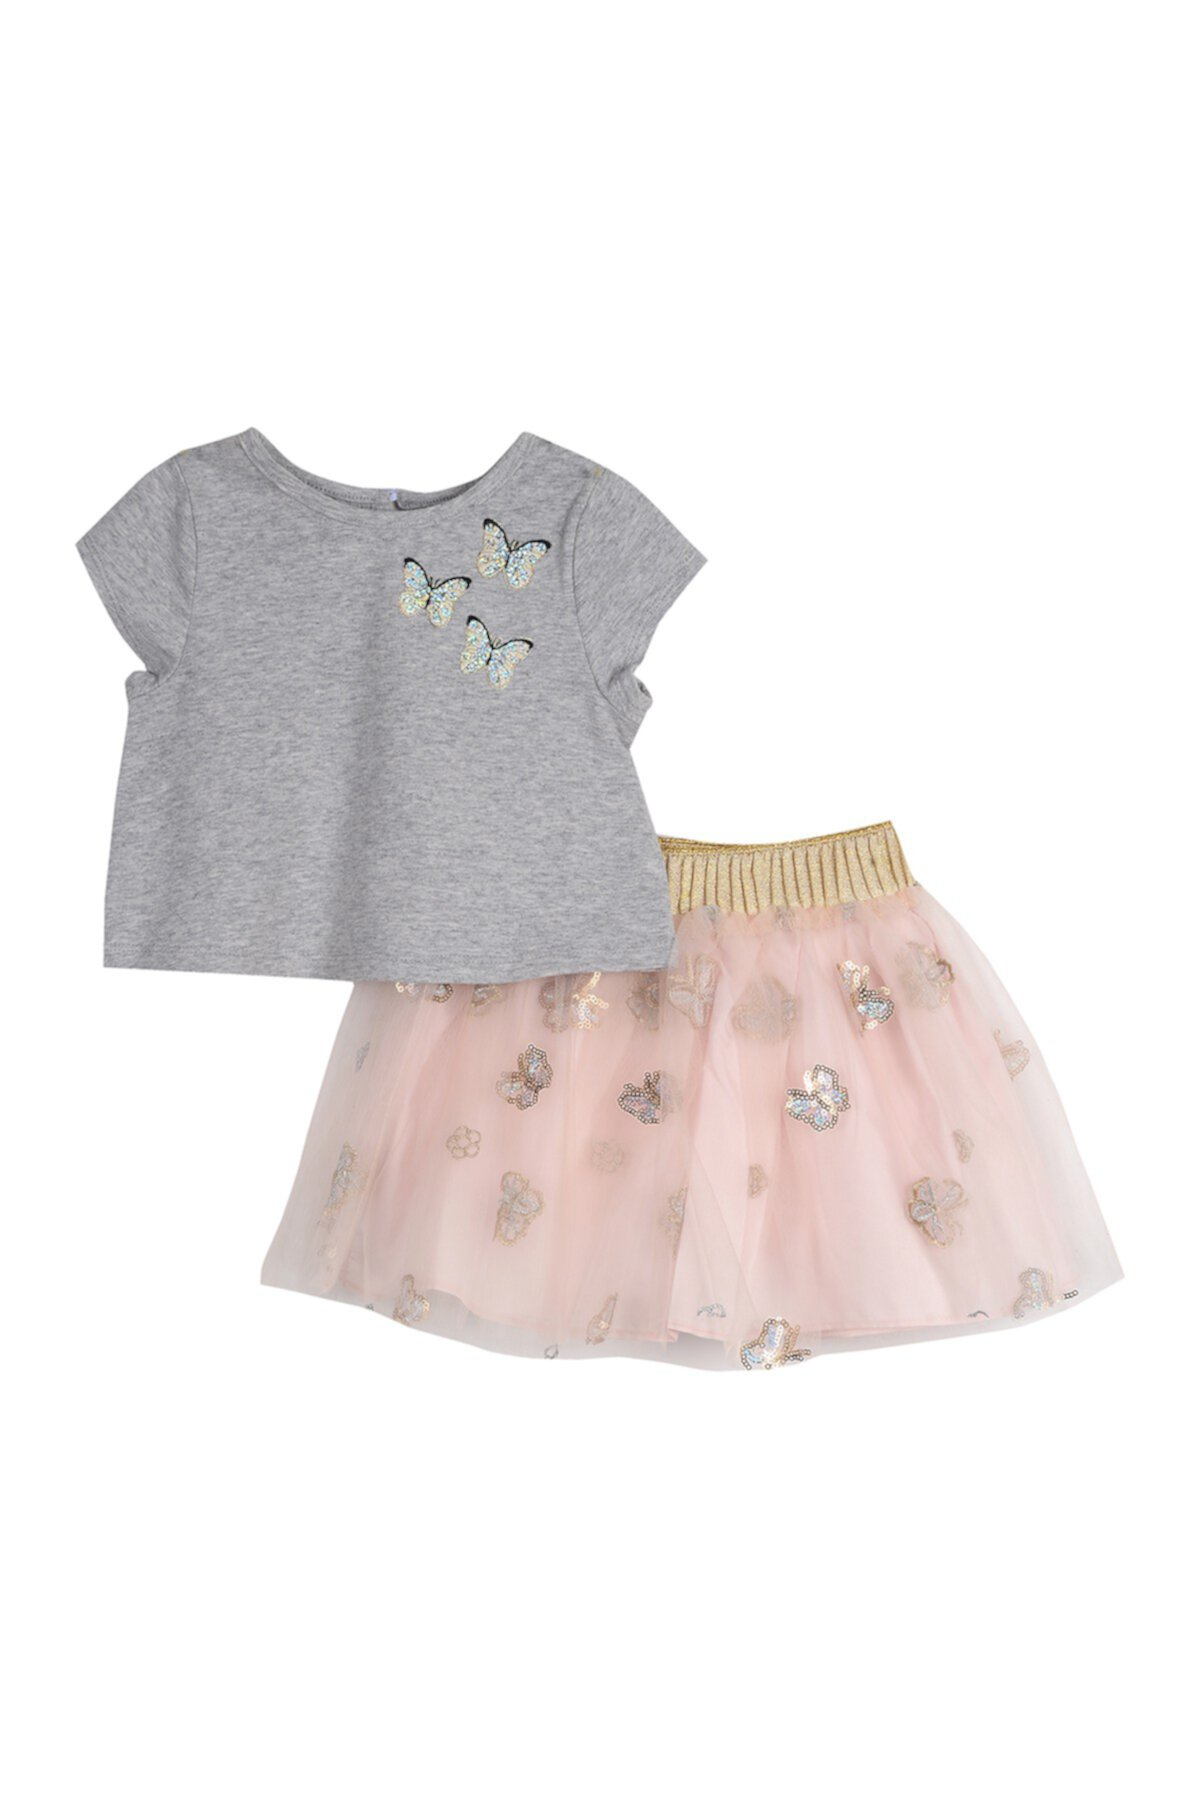 Sequin Butterfly 2-Piece Skirt Set (Little Girls) Pastourelle by Pippa and Julie